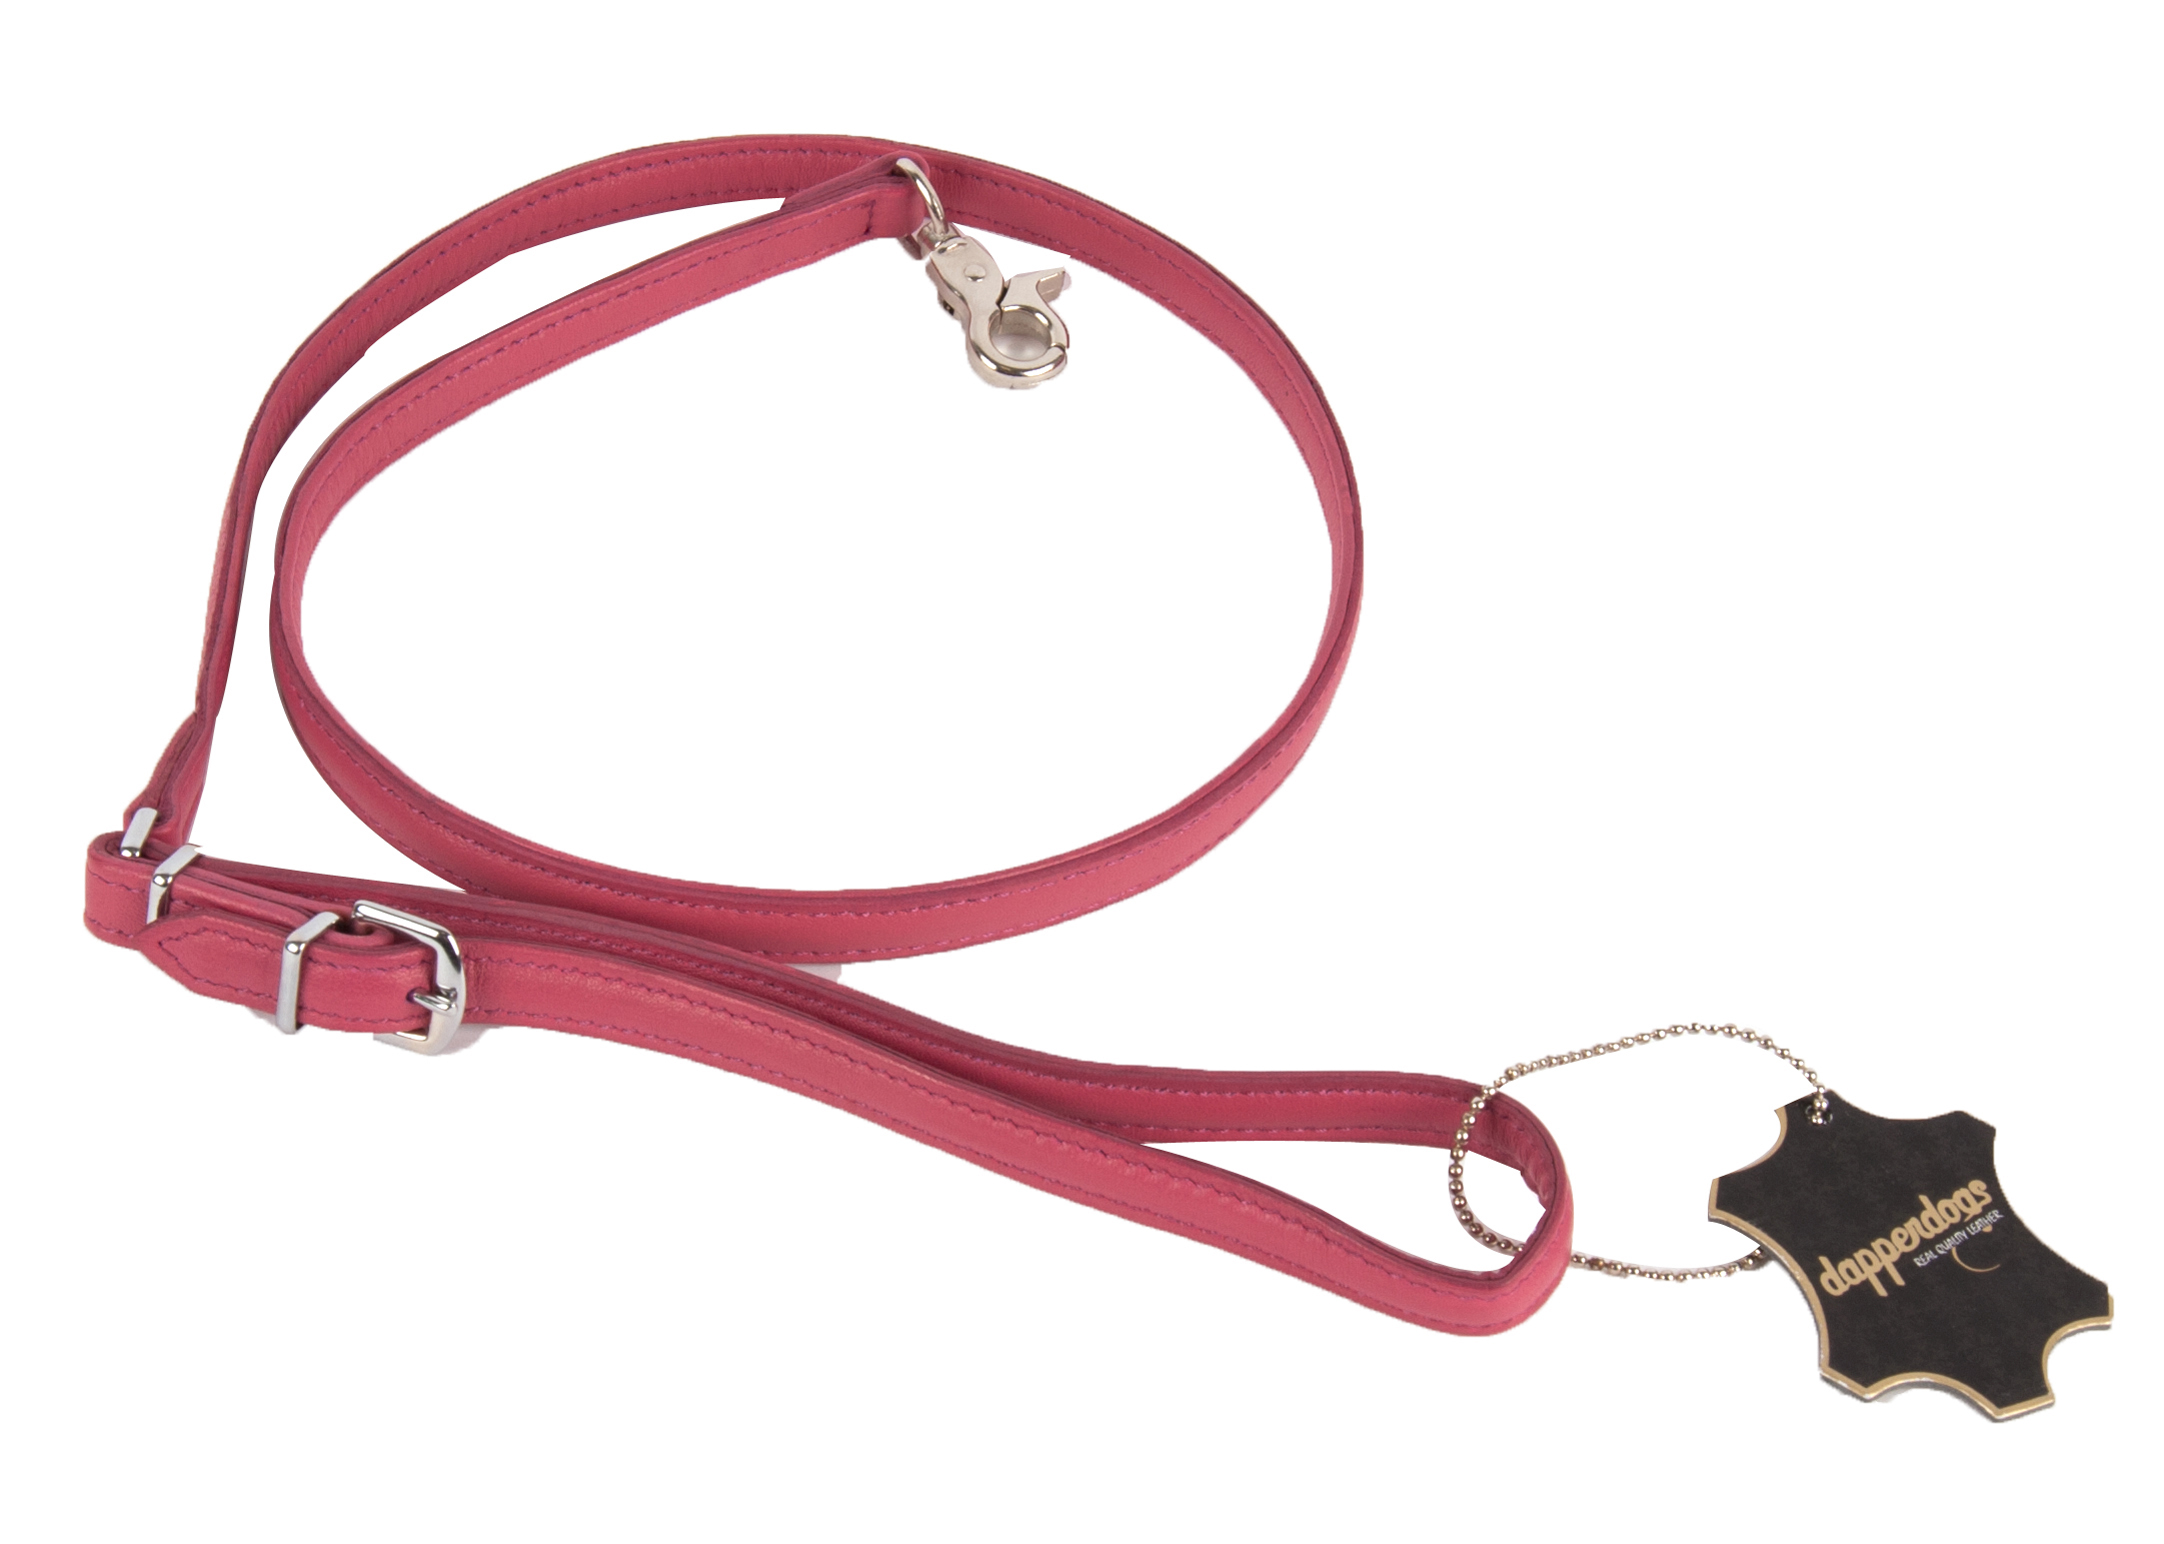 Dapper Dogs Leiband Roze 1,3 x 100cm Leiband